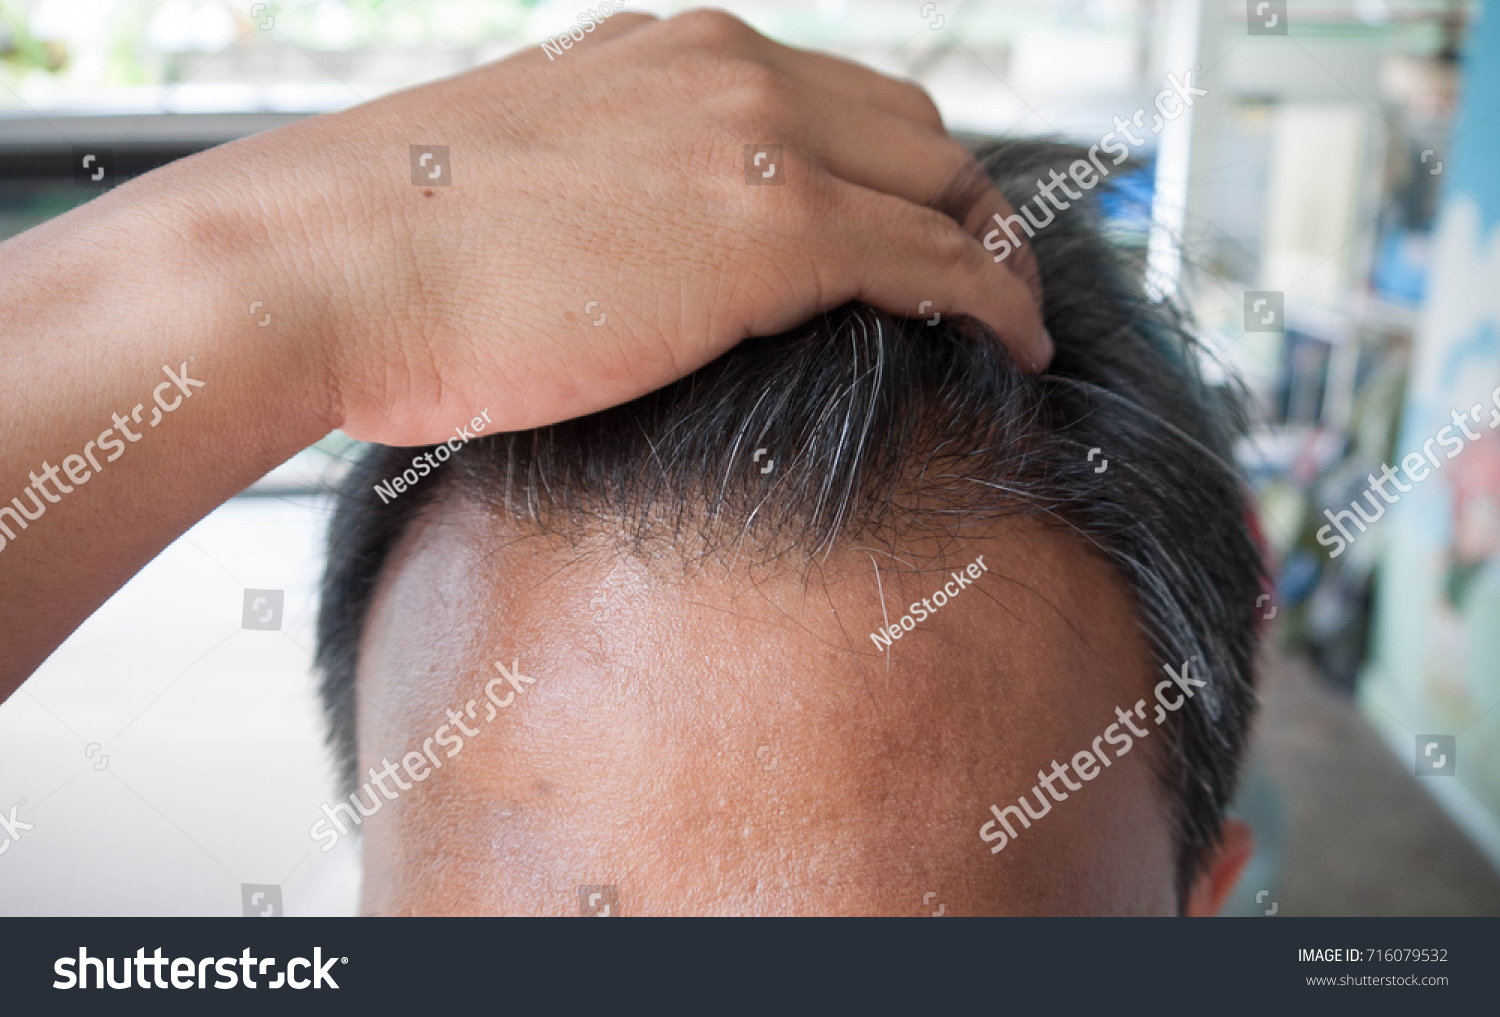 5 Months After Hair Transplant Stock Photo Royalty Free 716079532